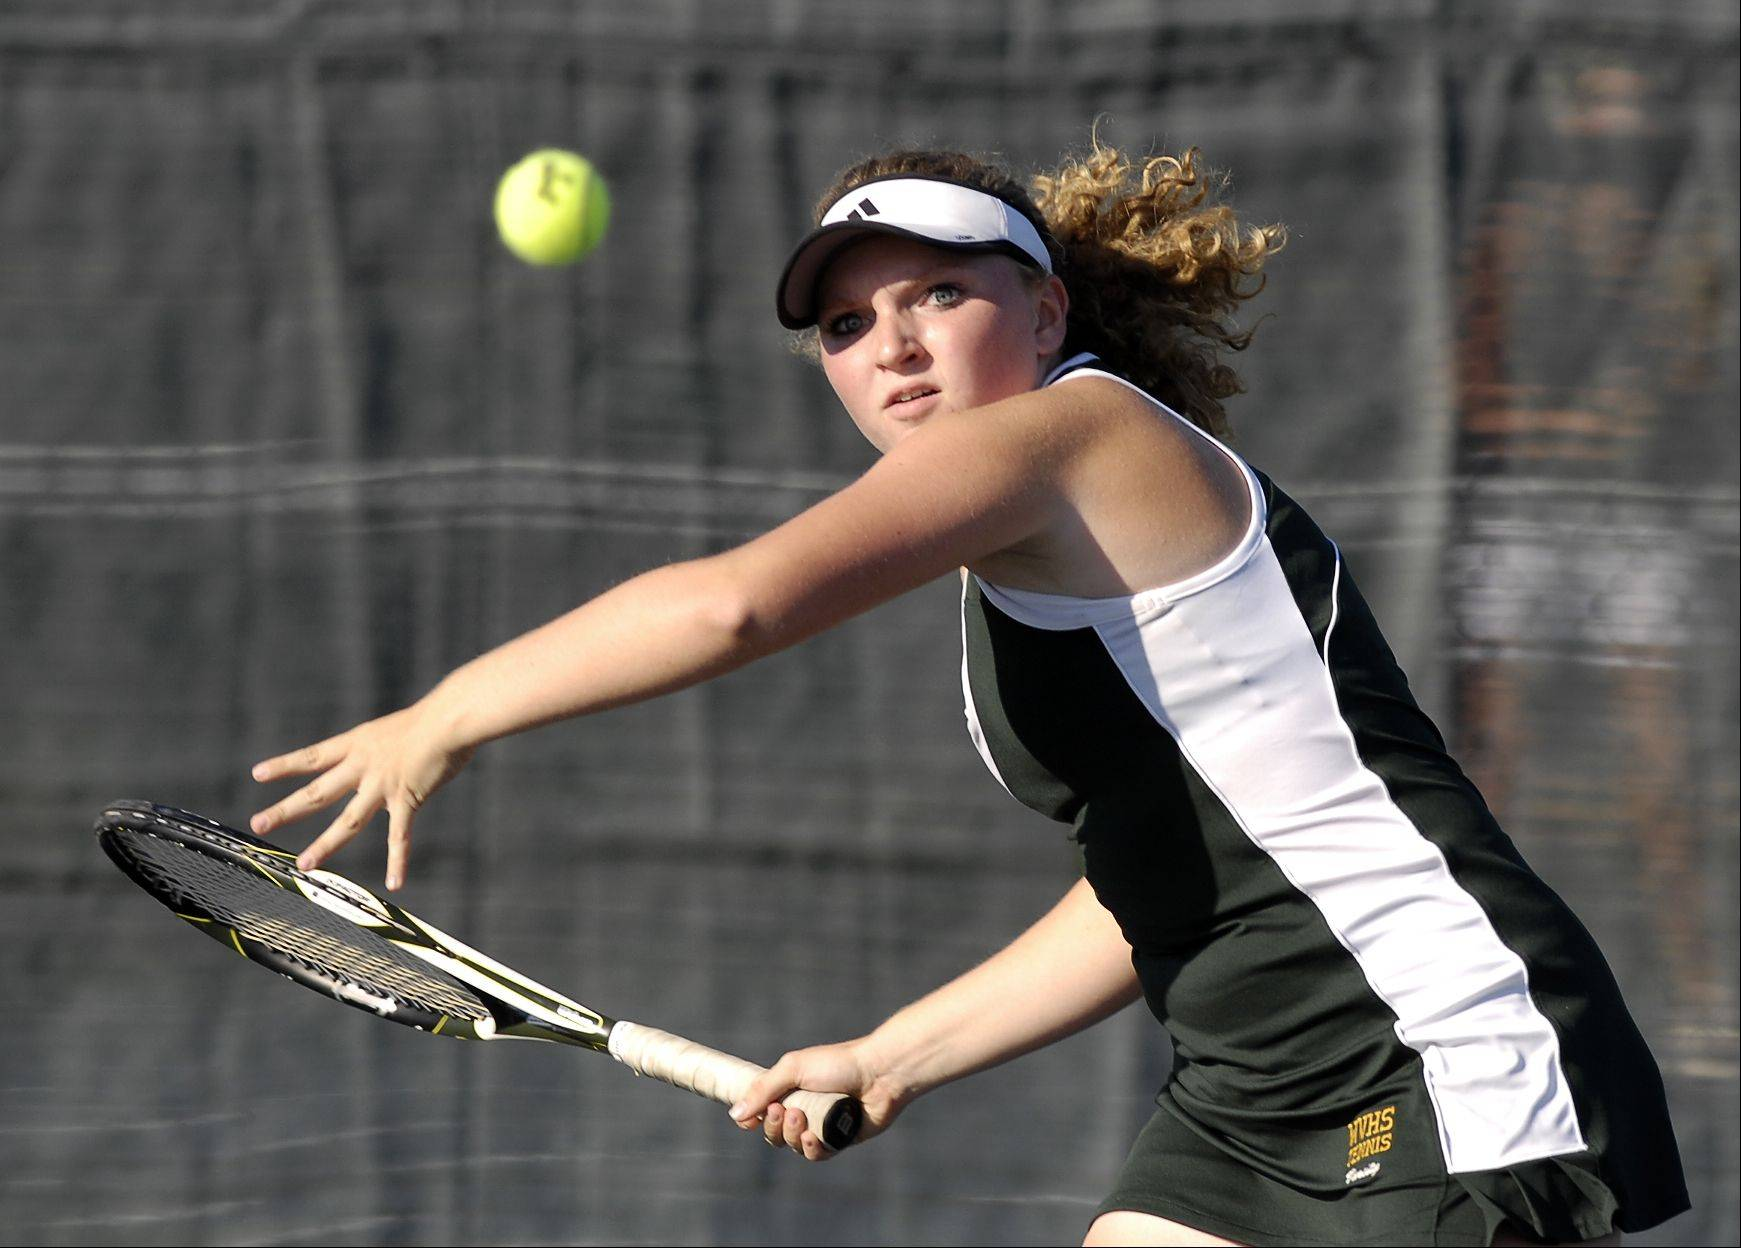 Waubonsie Valley's Katie Drone keeps a sharp eye on the ball during her tennis match against St. Charles East's Sarah Church Wednesday in Auroroa.